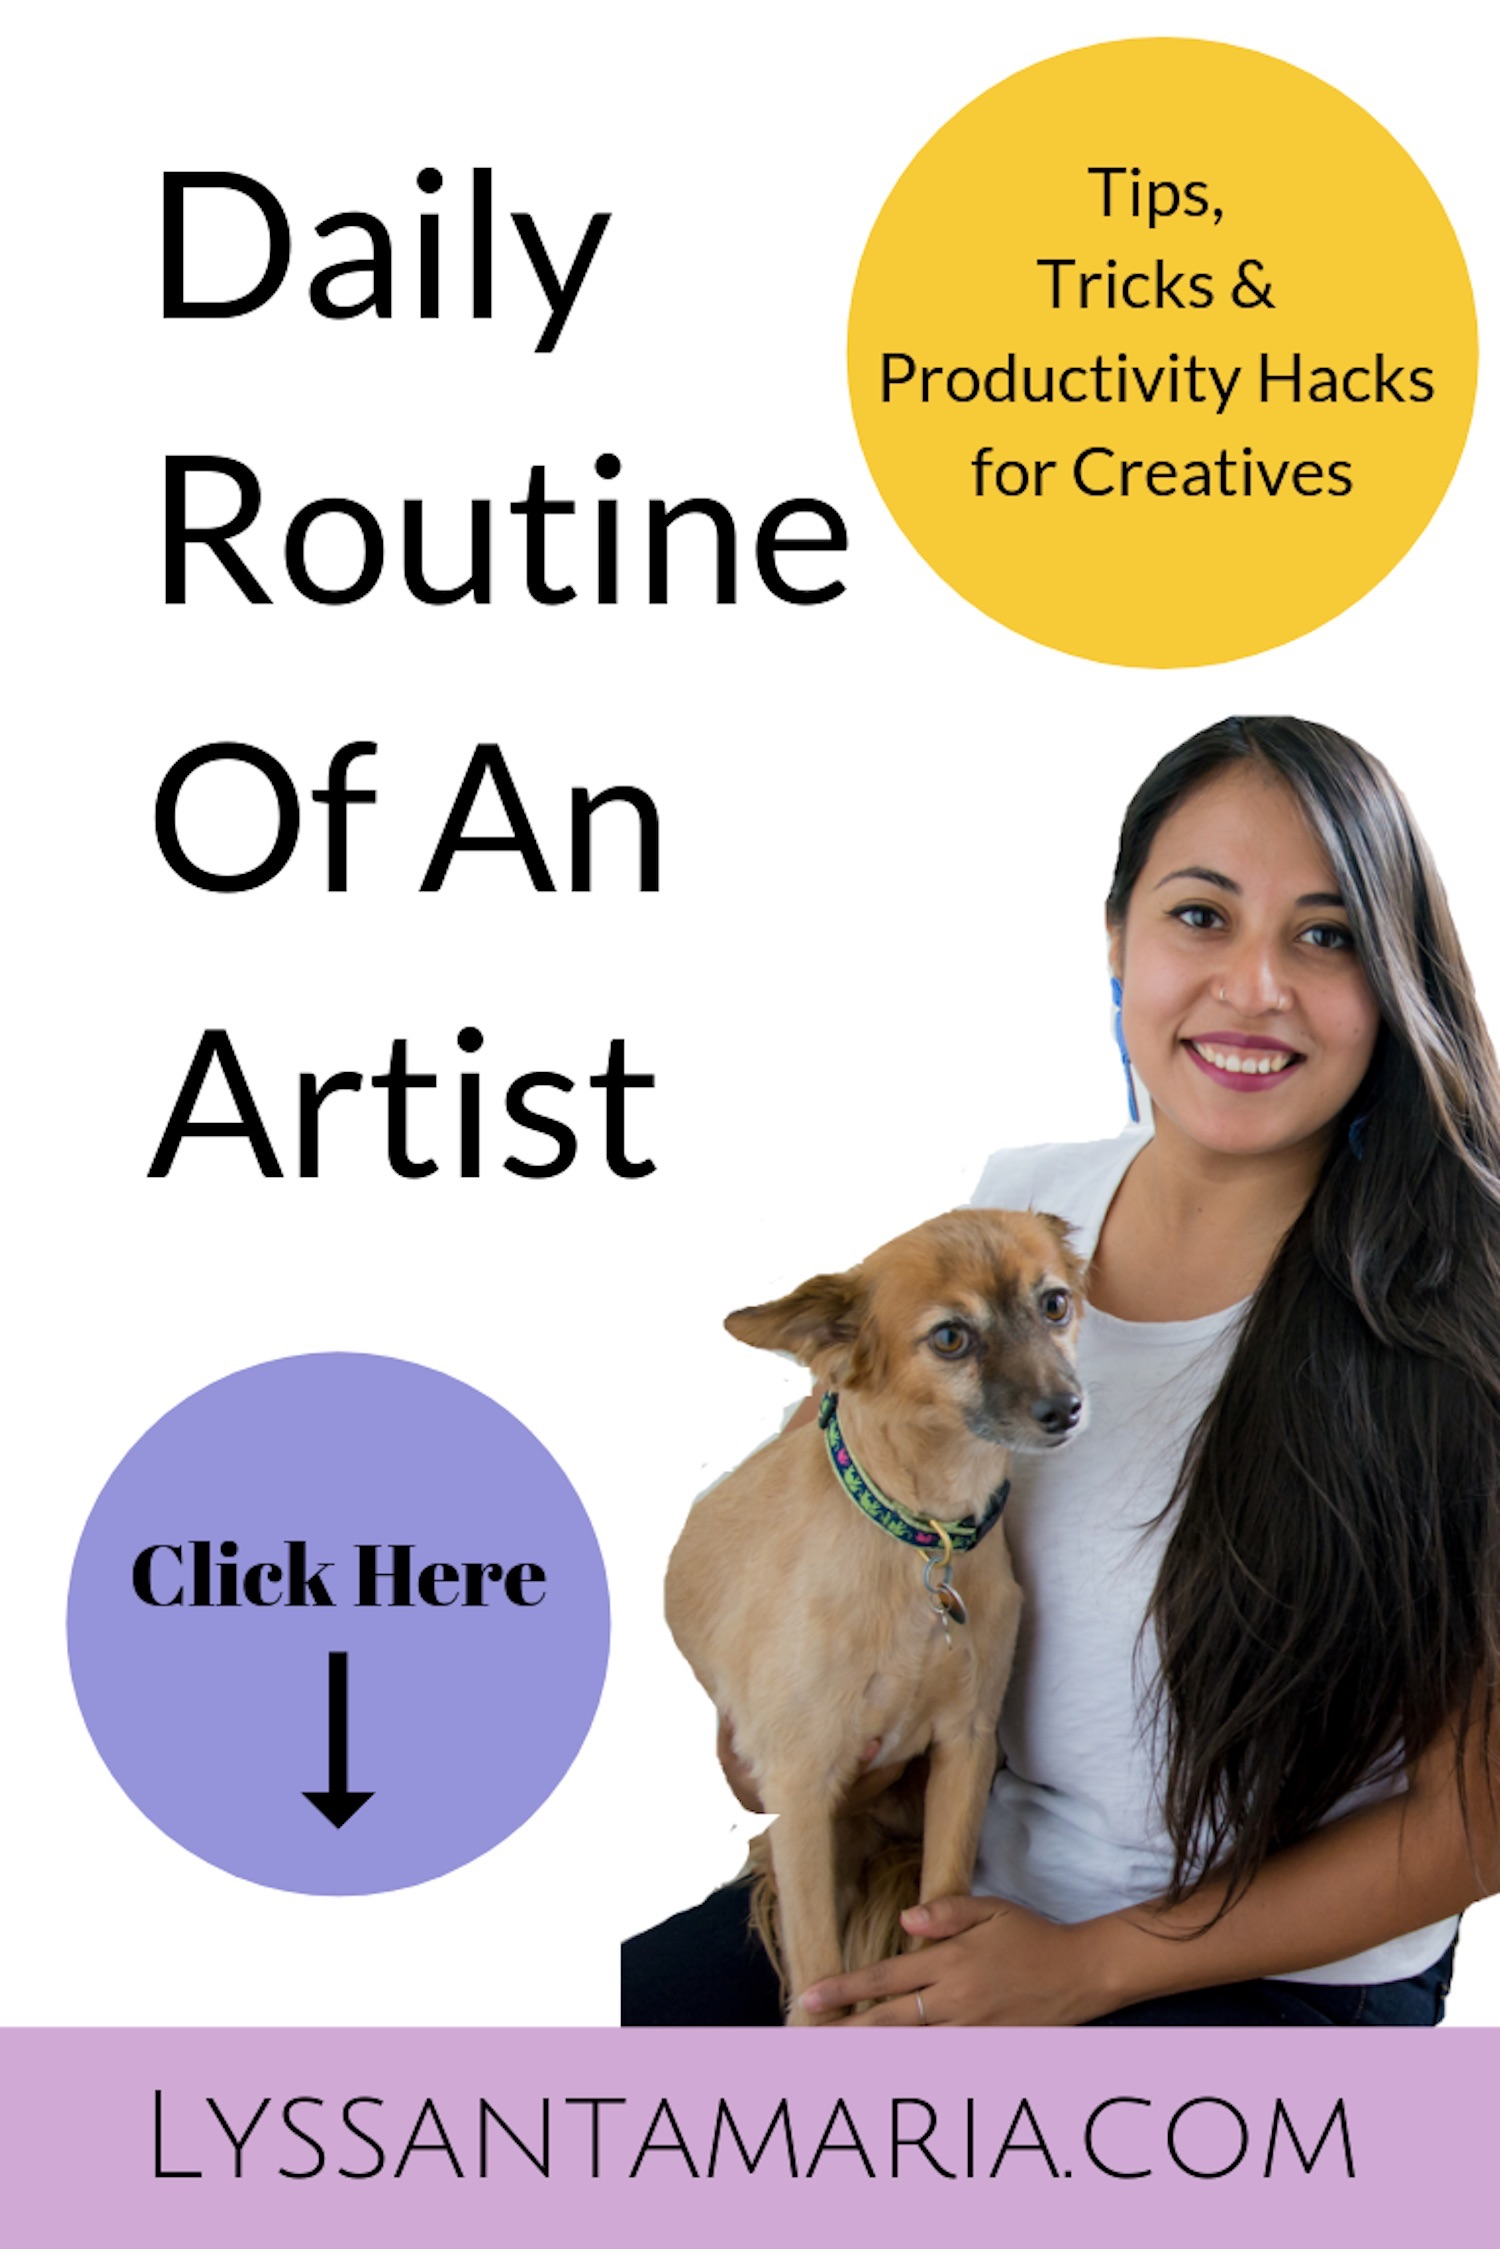 Daily Routine of Beadwork Artist - Tips, Tricks and Productivity Hacks - PINTEREST.jpg